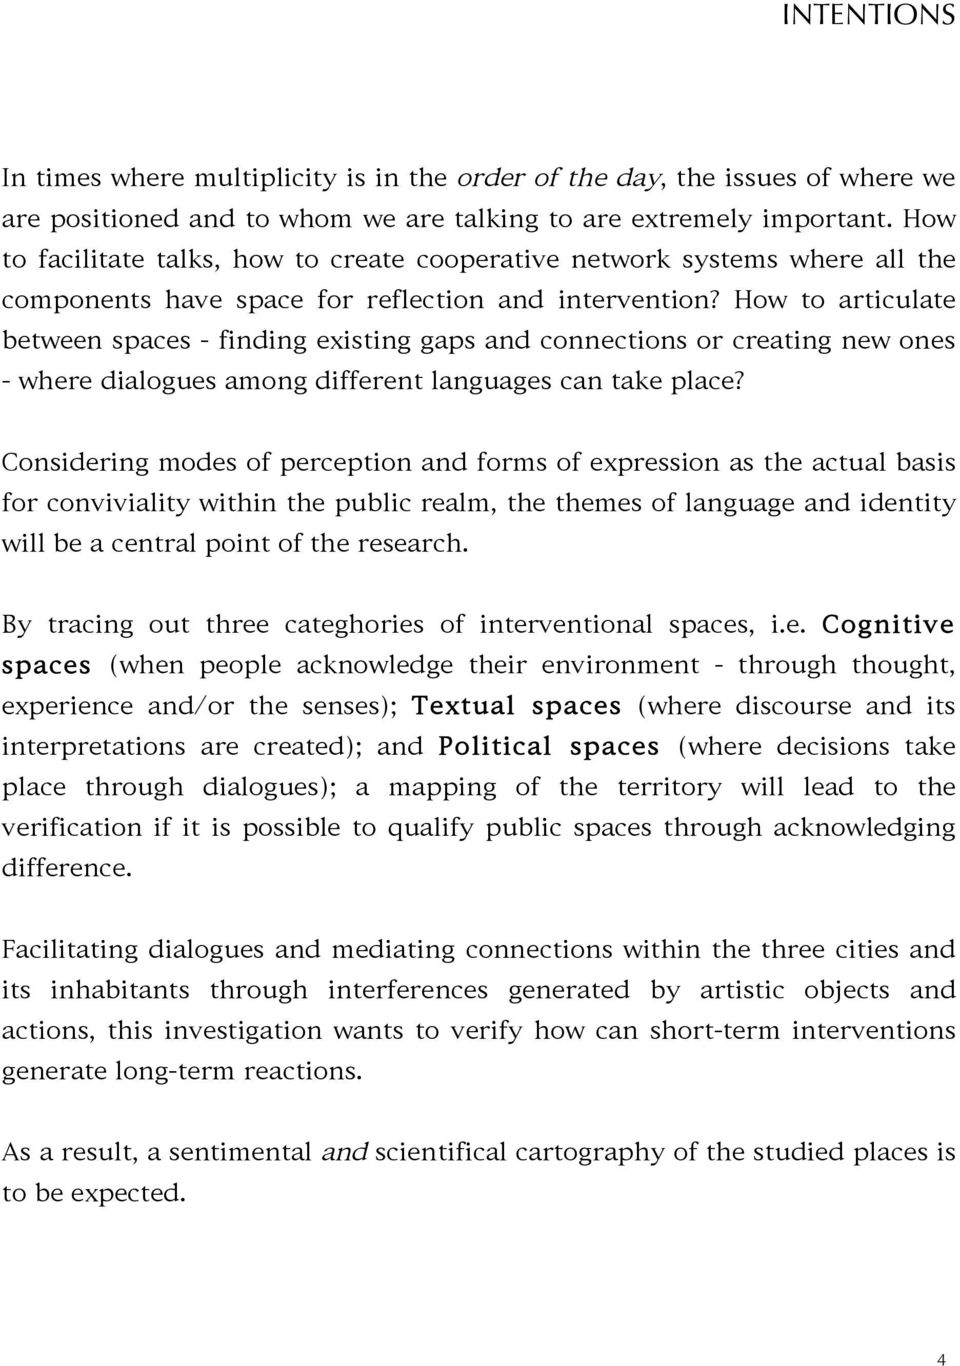 How to articulate between spaces - finding existing gaps and connections or creating new ones - where dialogues among different languages can take place?